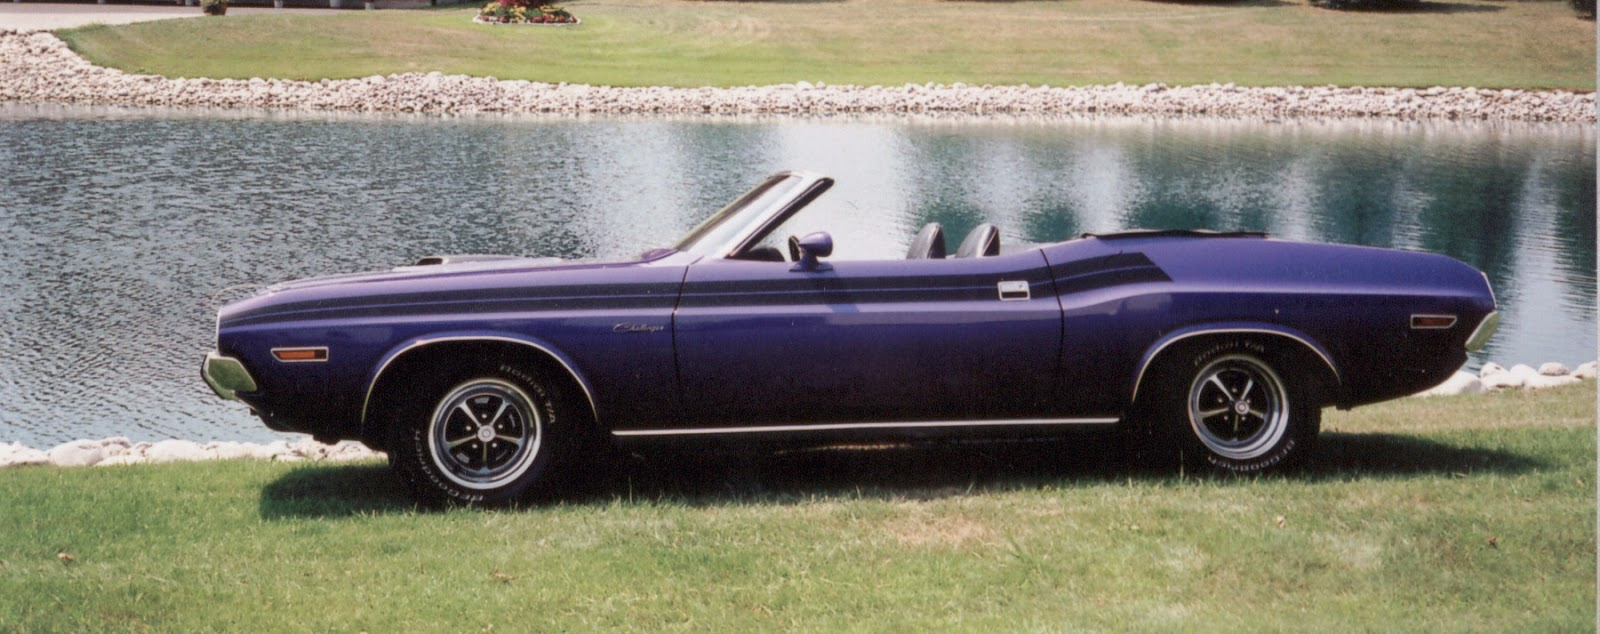 1971 dodge challenger 340 convertible the almost rt phscollectorcarworld. Black Bedroom Furniture Sets. Home Design Ideas